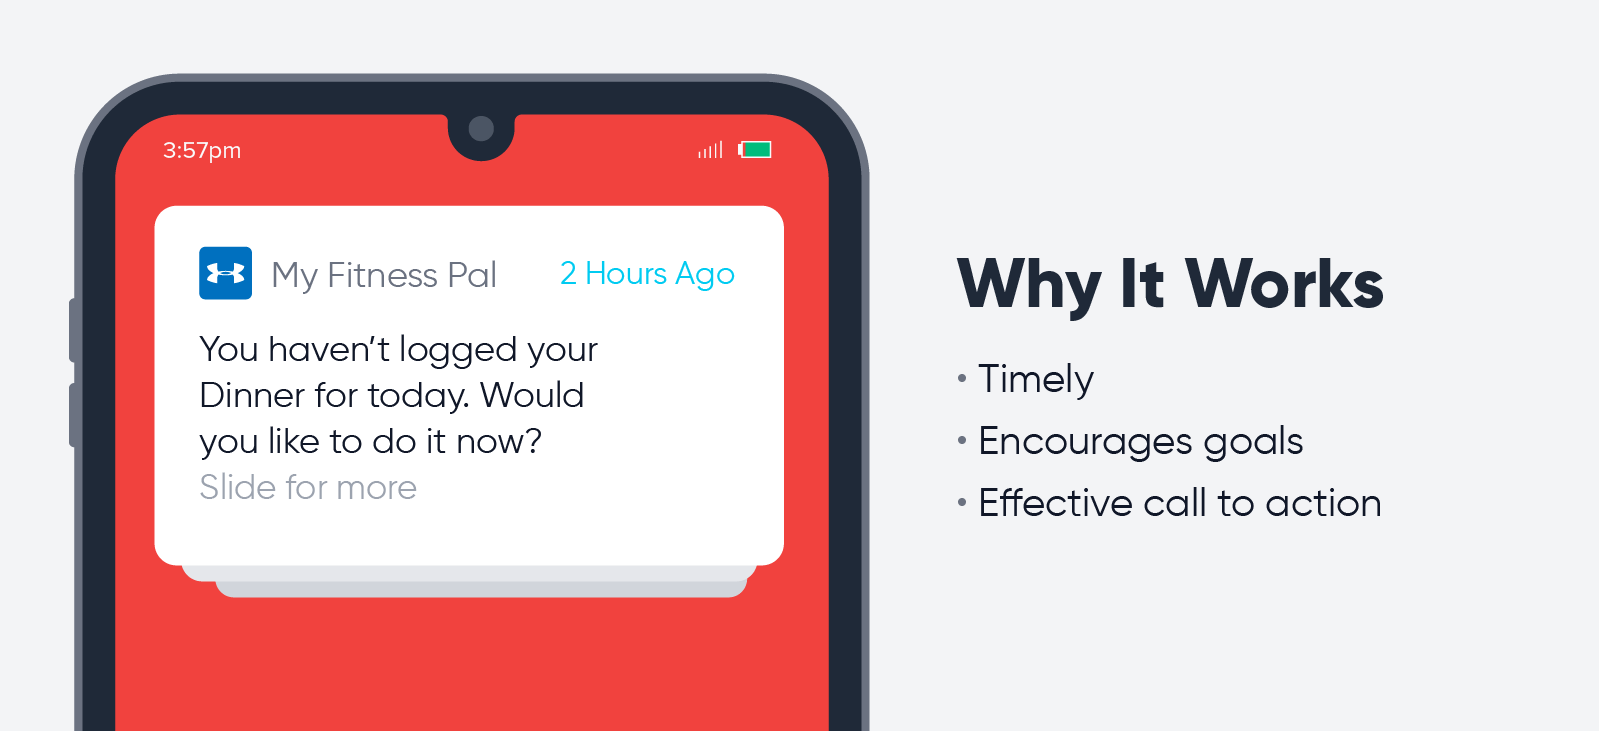 My Fitness Pal - push notification best practices